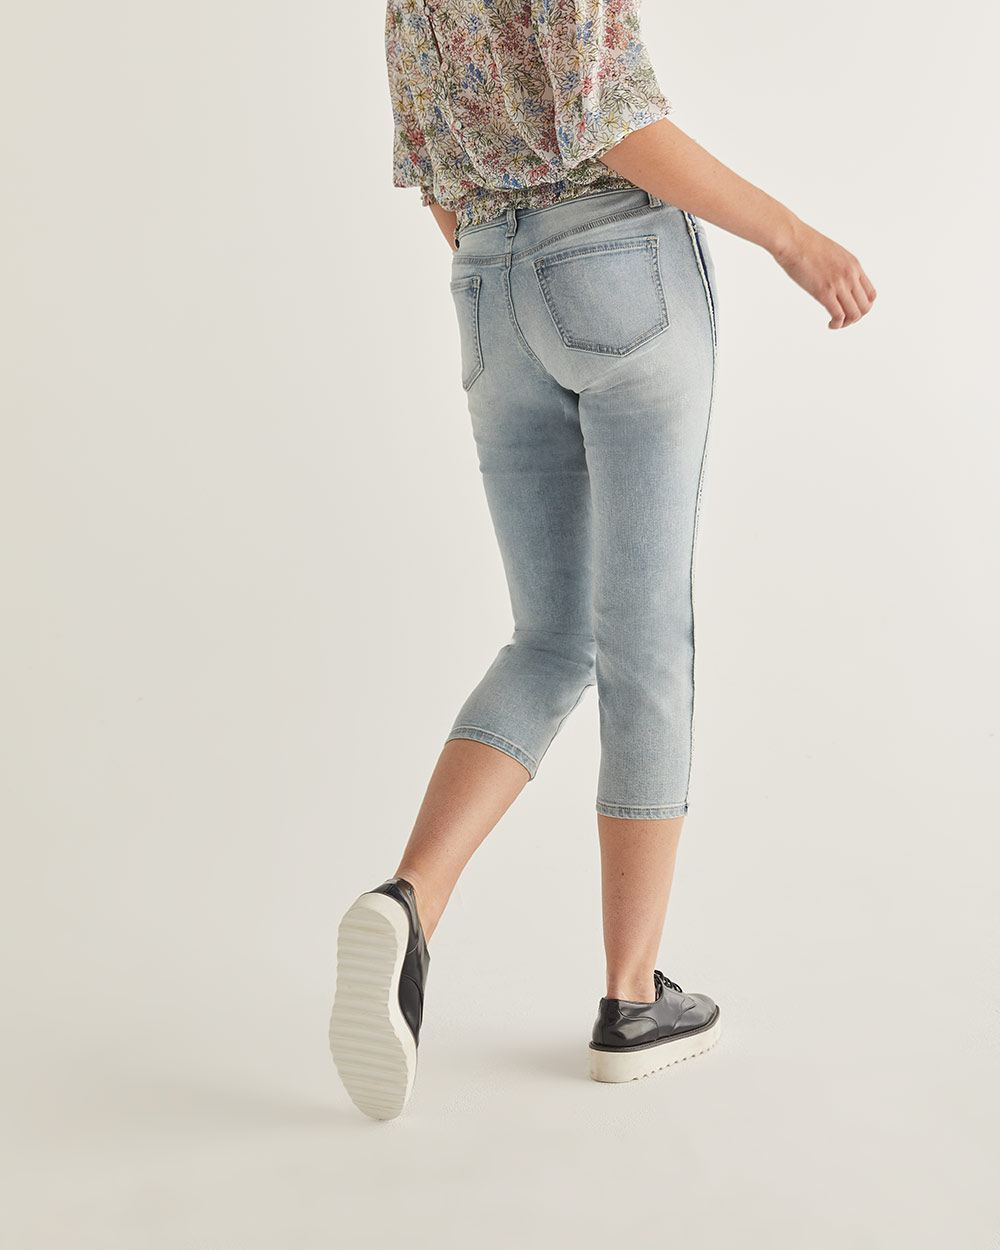 The Insider Cropped Skinny Jeans with Side Band